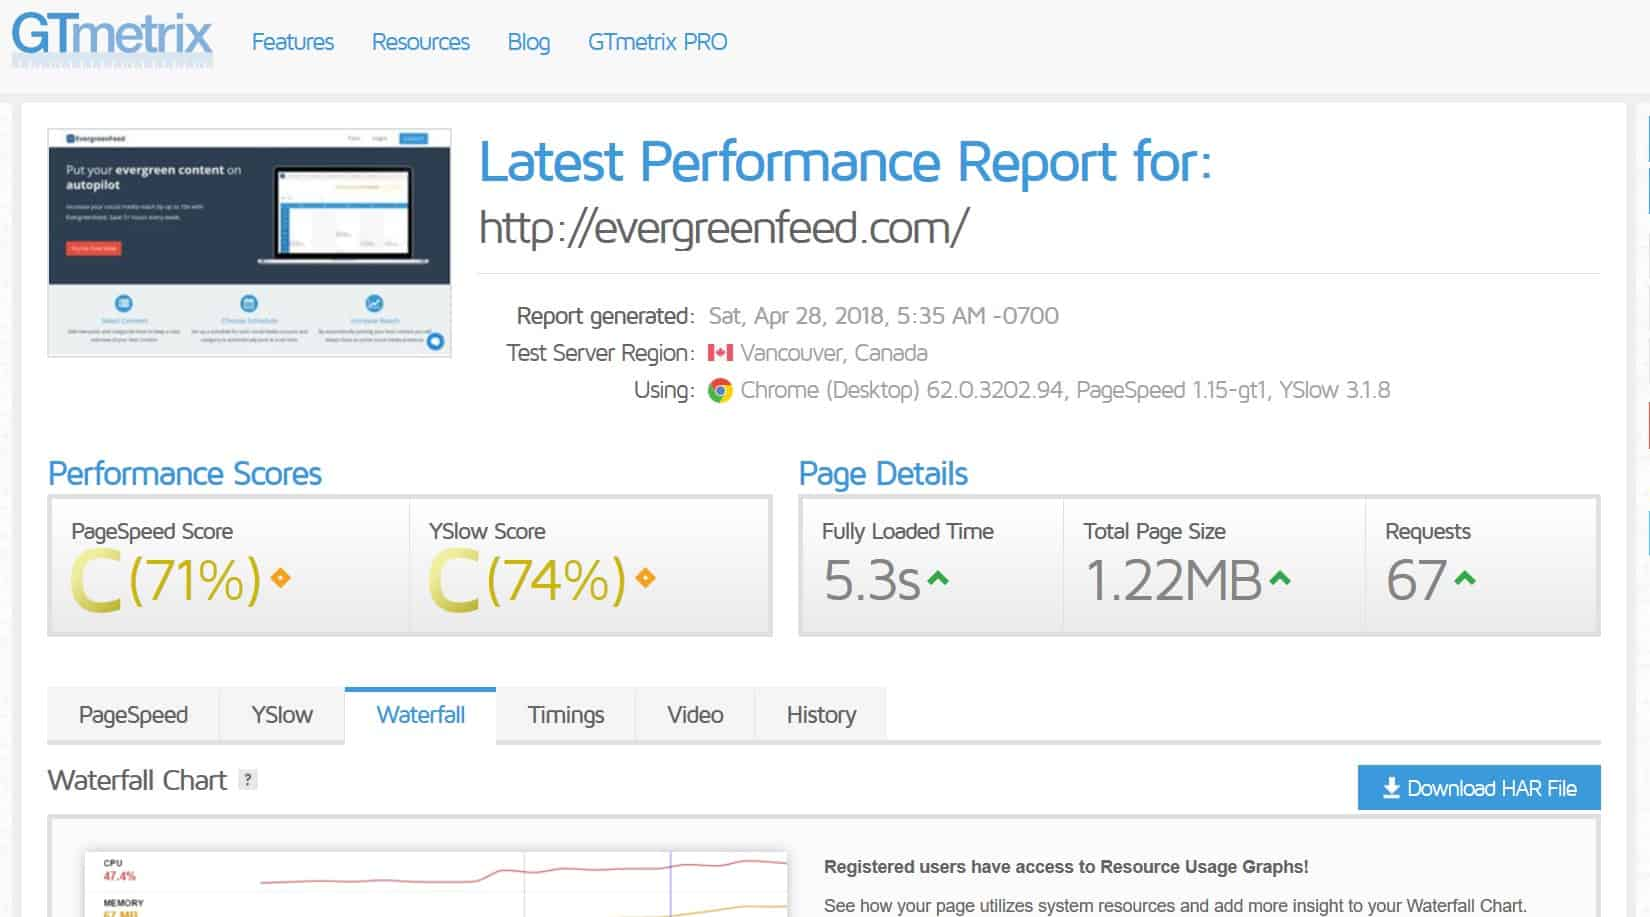 One of the best website audit tools available.